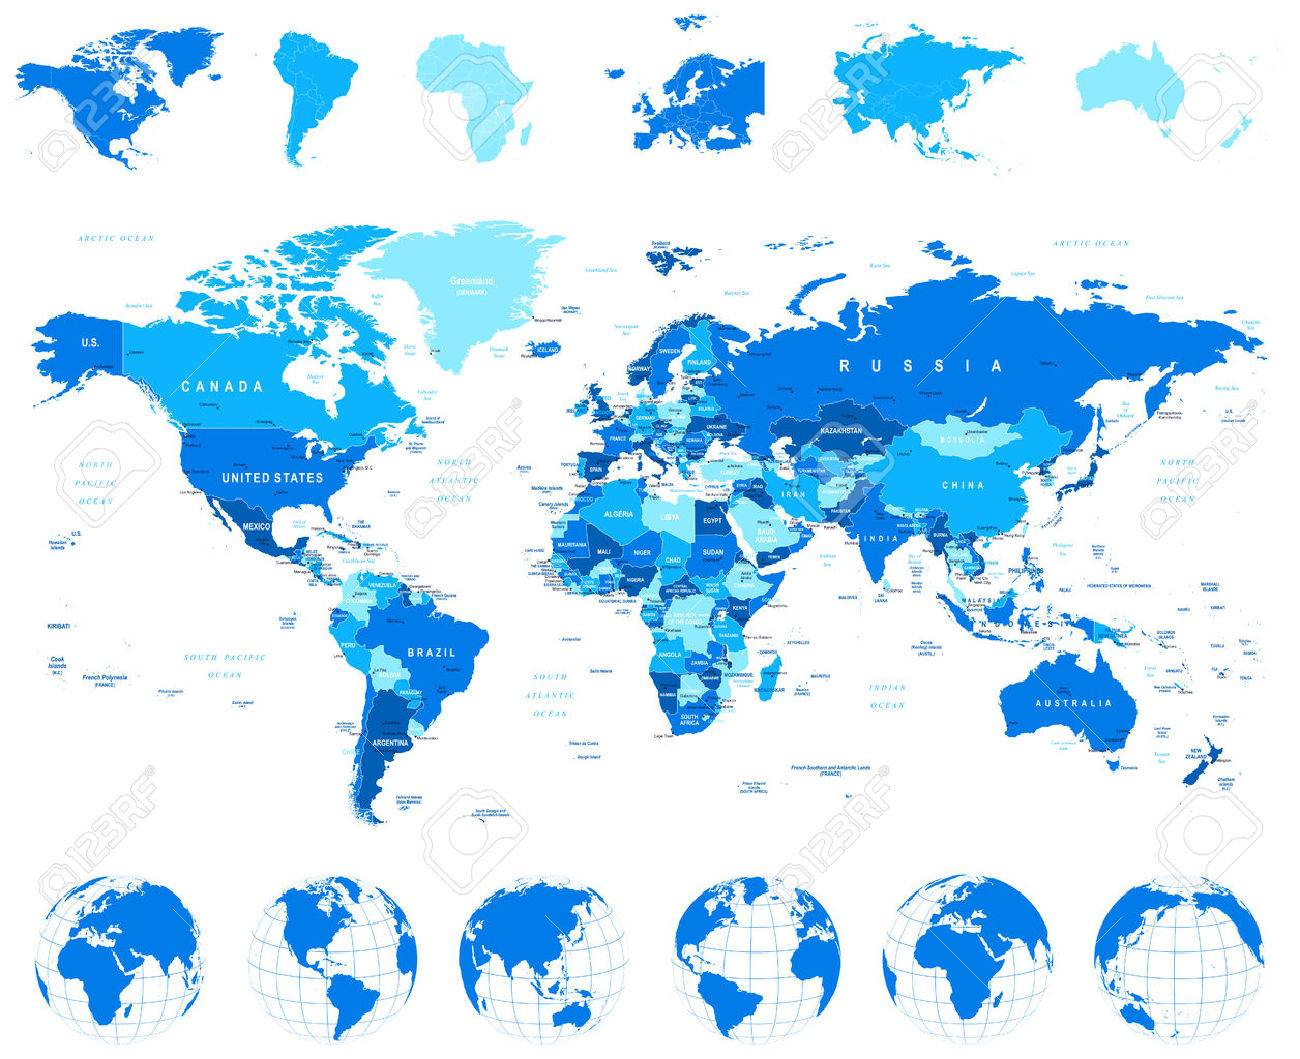 World Map, Globes, Continents - illustration. Highly detailed vector illustration of world map, globes and continents. - 43474197